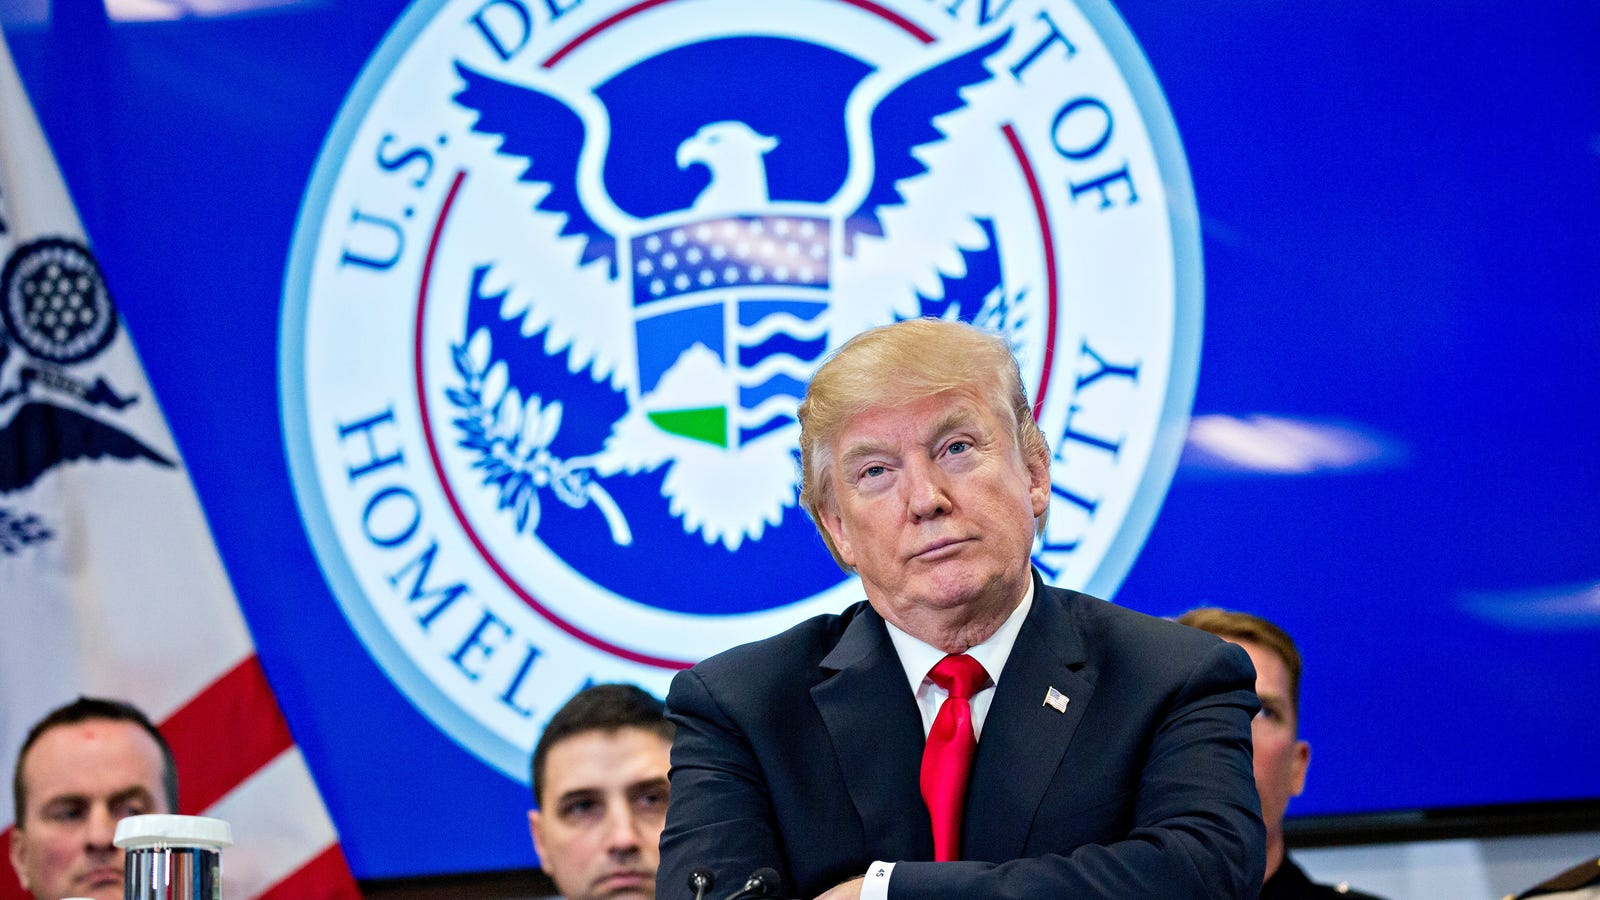 Report: Trump Wanted to Shoot, Electrocute and Use Alligators on Migrants at Mexican Border